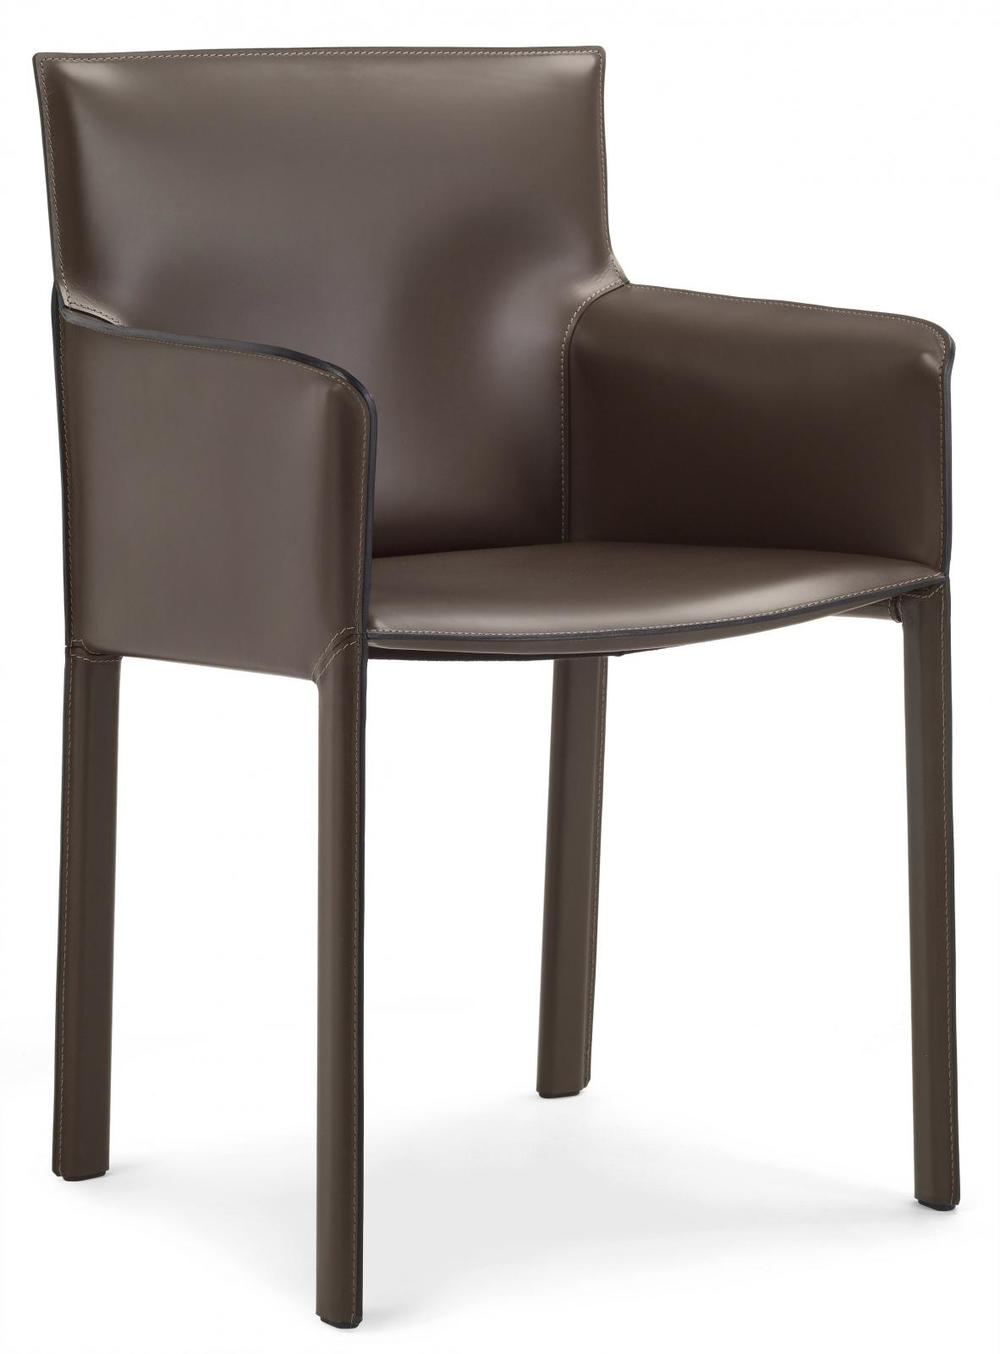 modern-leather-chairs-italian-furniture (17).jpg